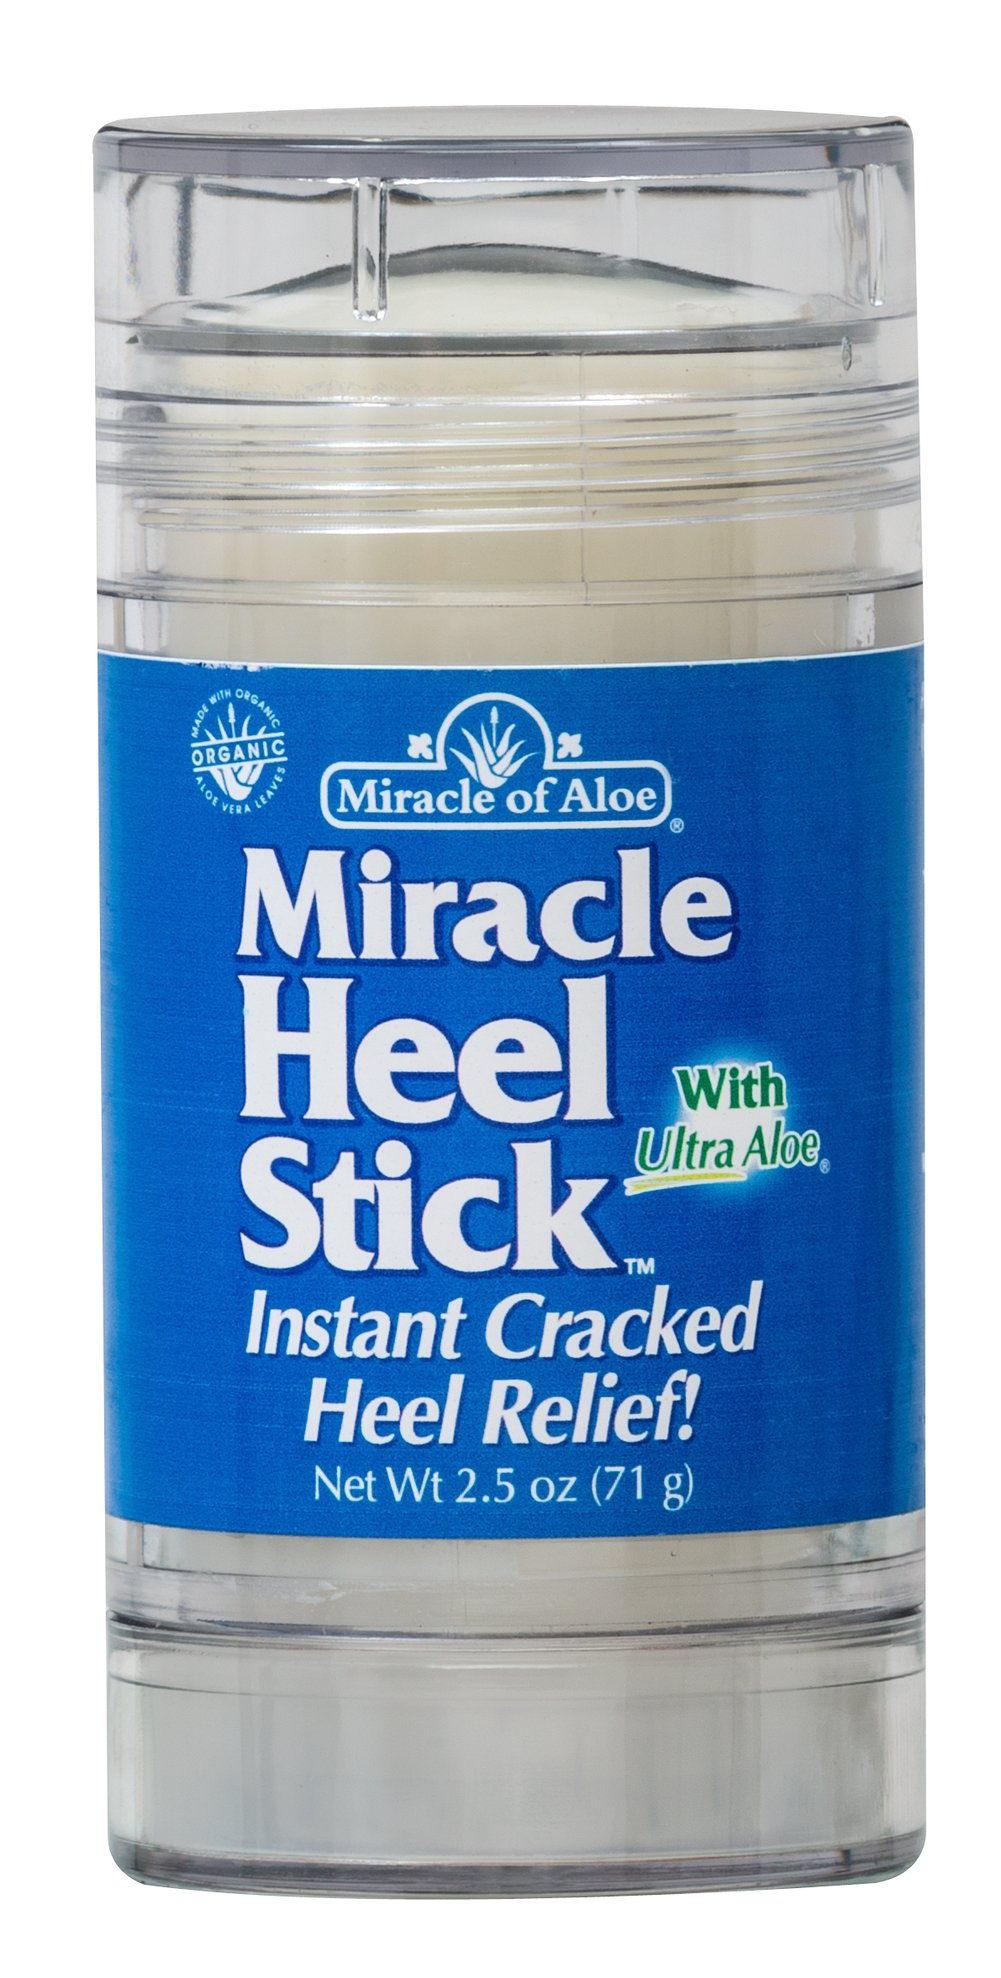 Miracle Heel Stick Thumbnail Alternate Bottle View